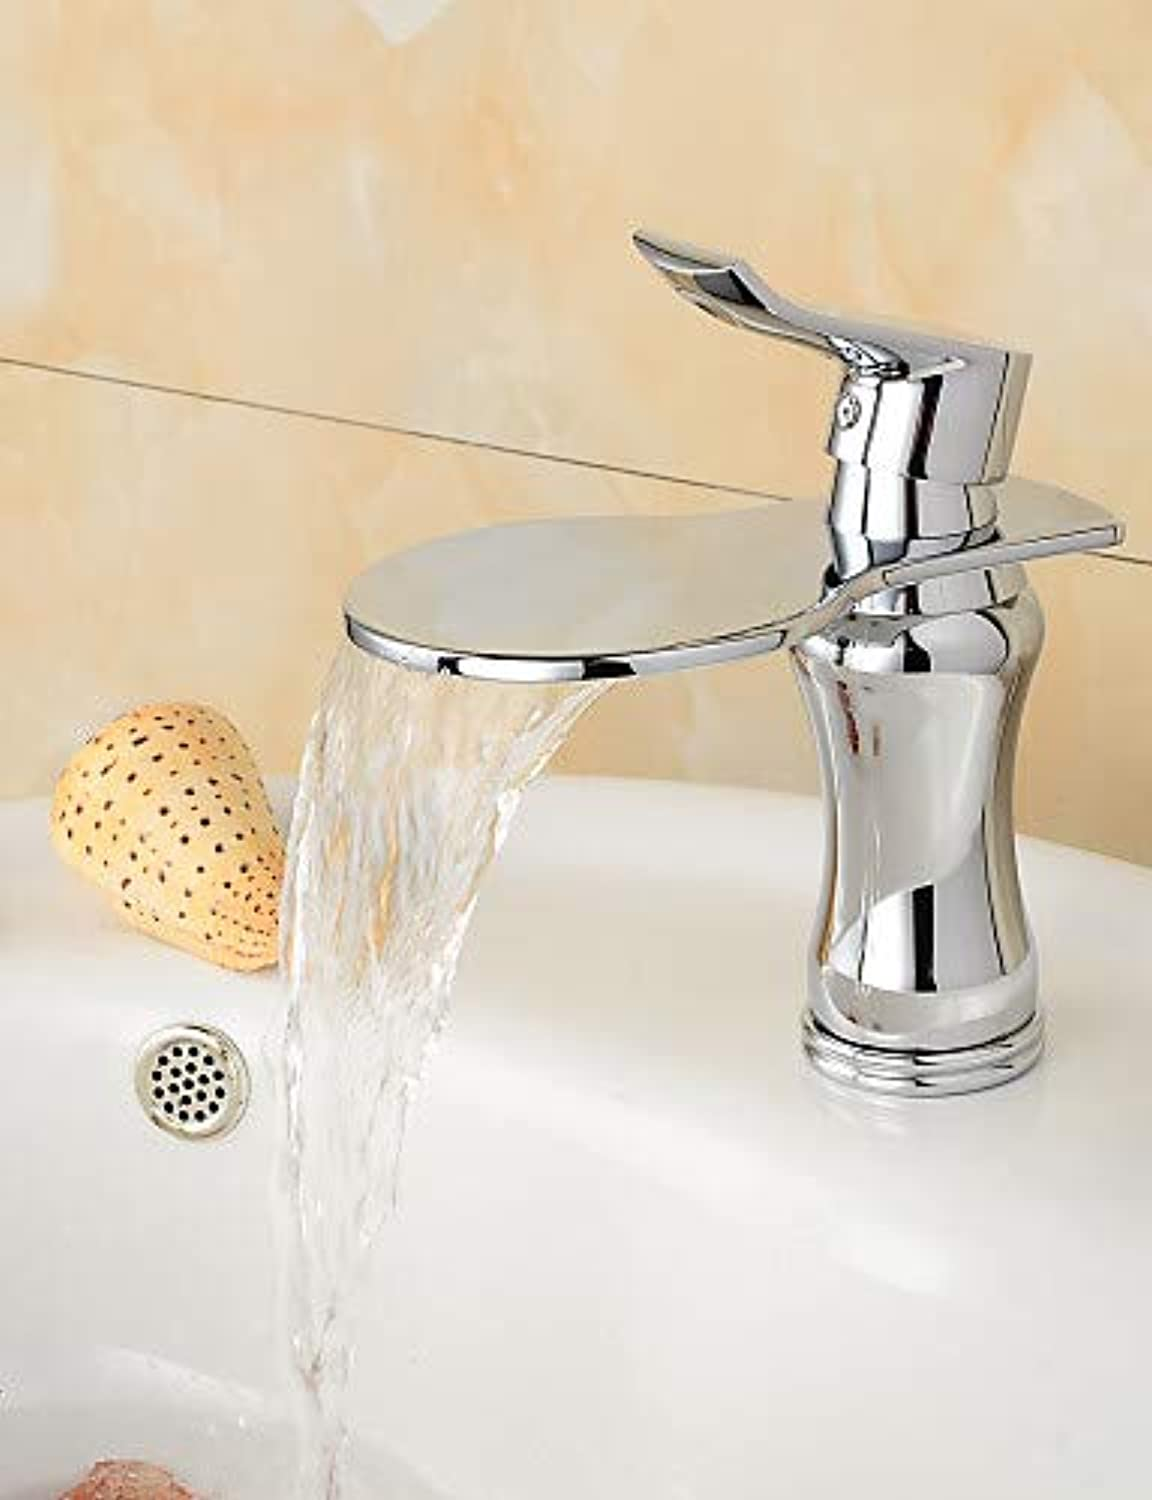 Mainstream home LPZSQ Tap Contemporary Chrome Finish Large Wide-mouth Waterfall Bathroom Sink Faucet (Short) - Sliver  1031